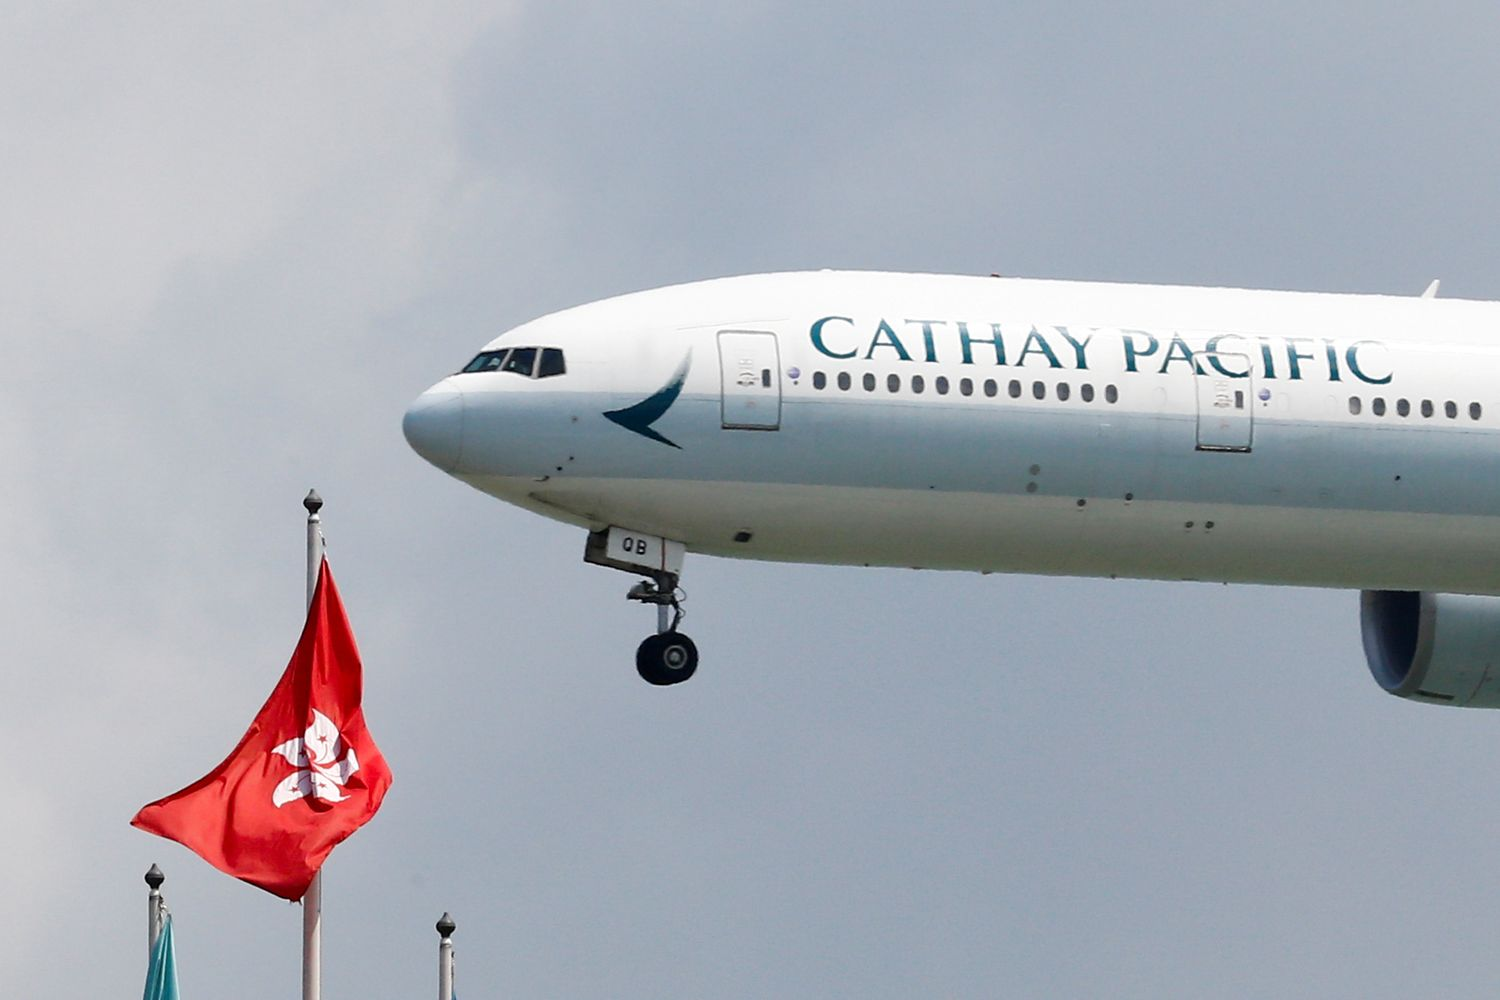 Hong Kong govt to lead $7 billion rescue package for Cathay Pacific